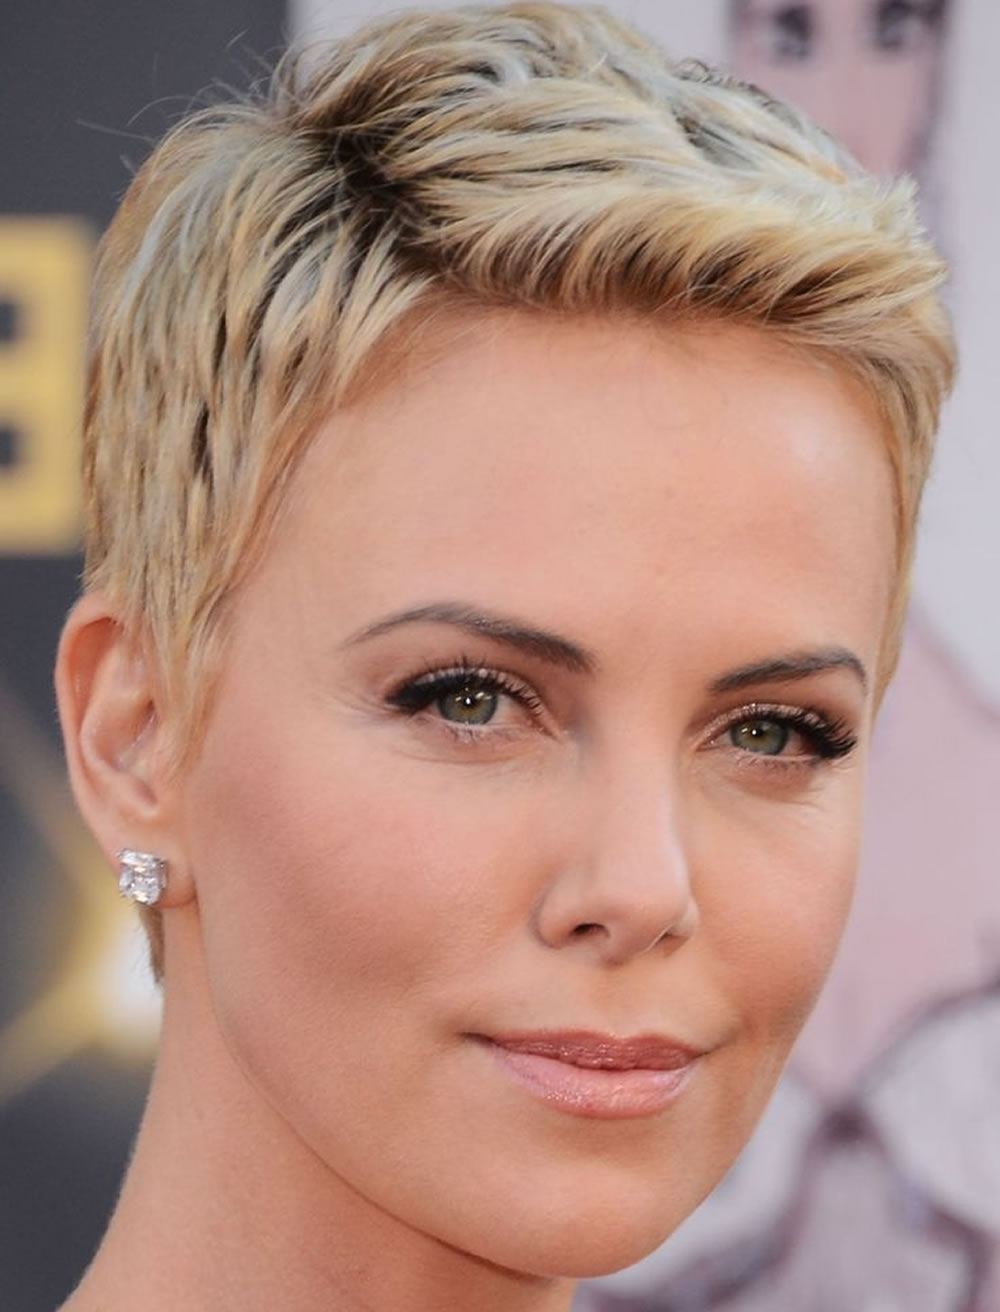 30 Cute Pixie Cuts: Short Hairstyles for Oval Faces